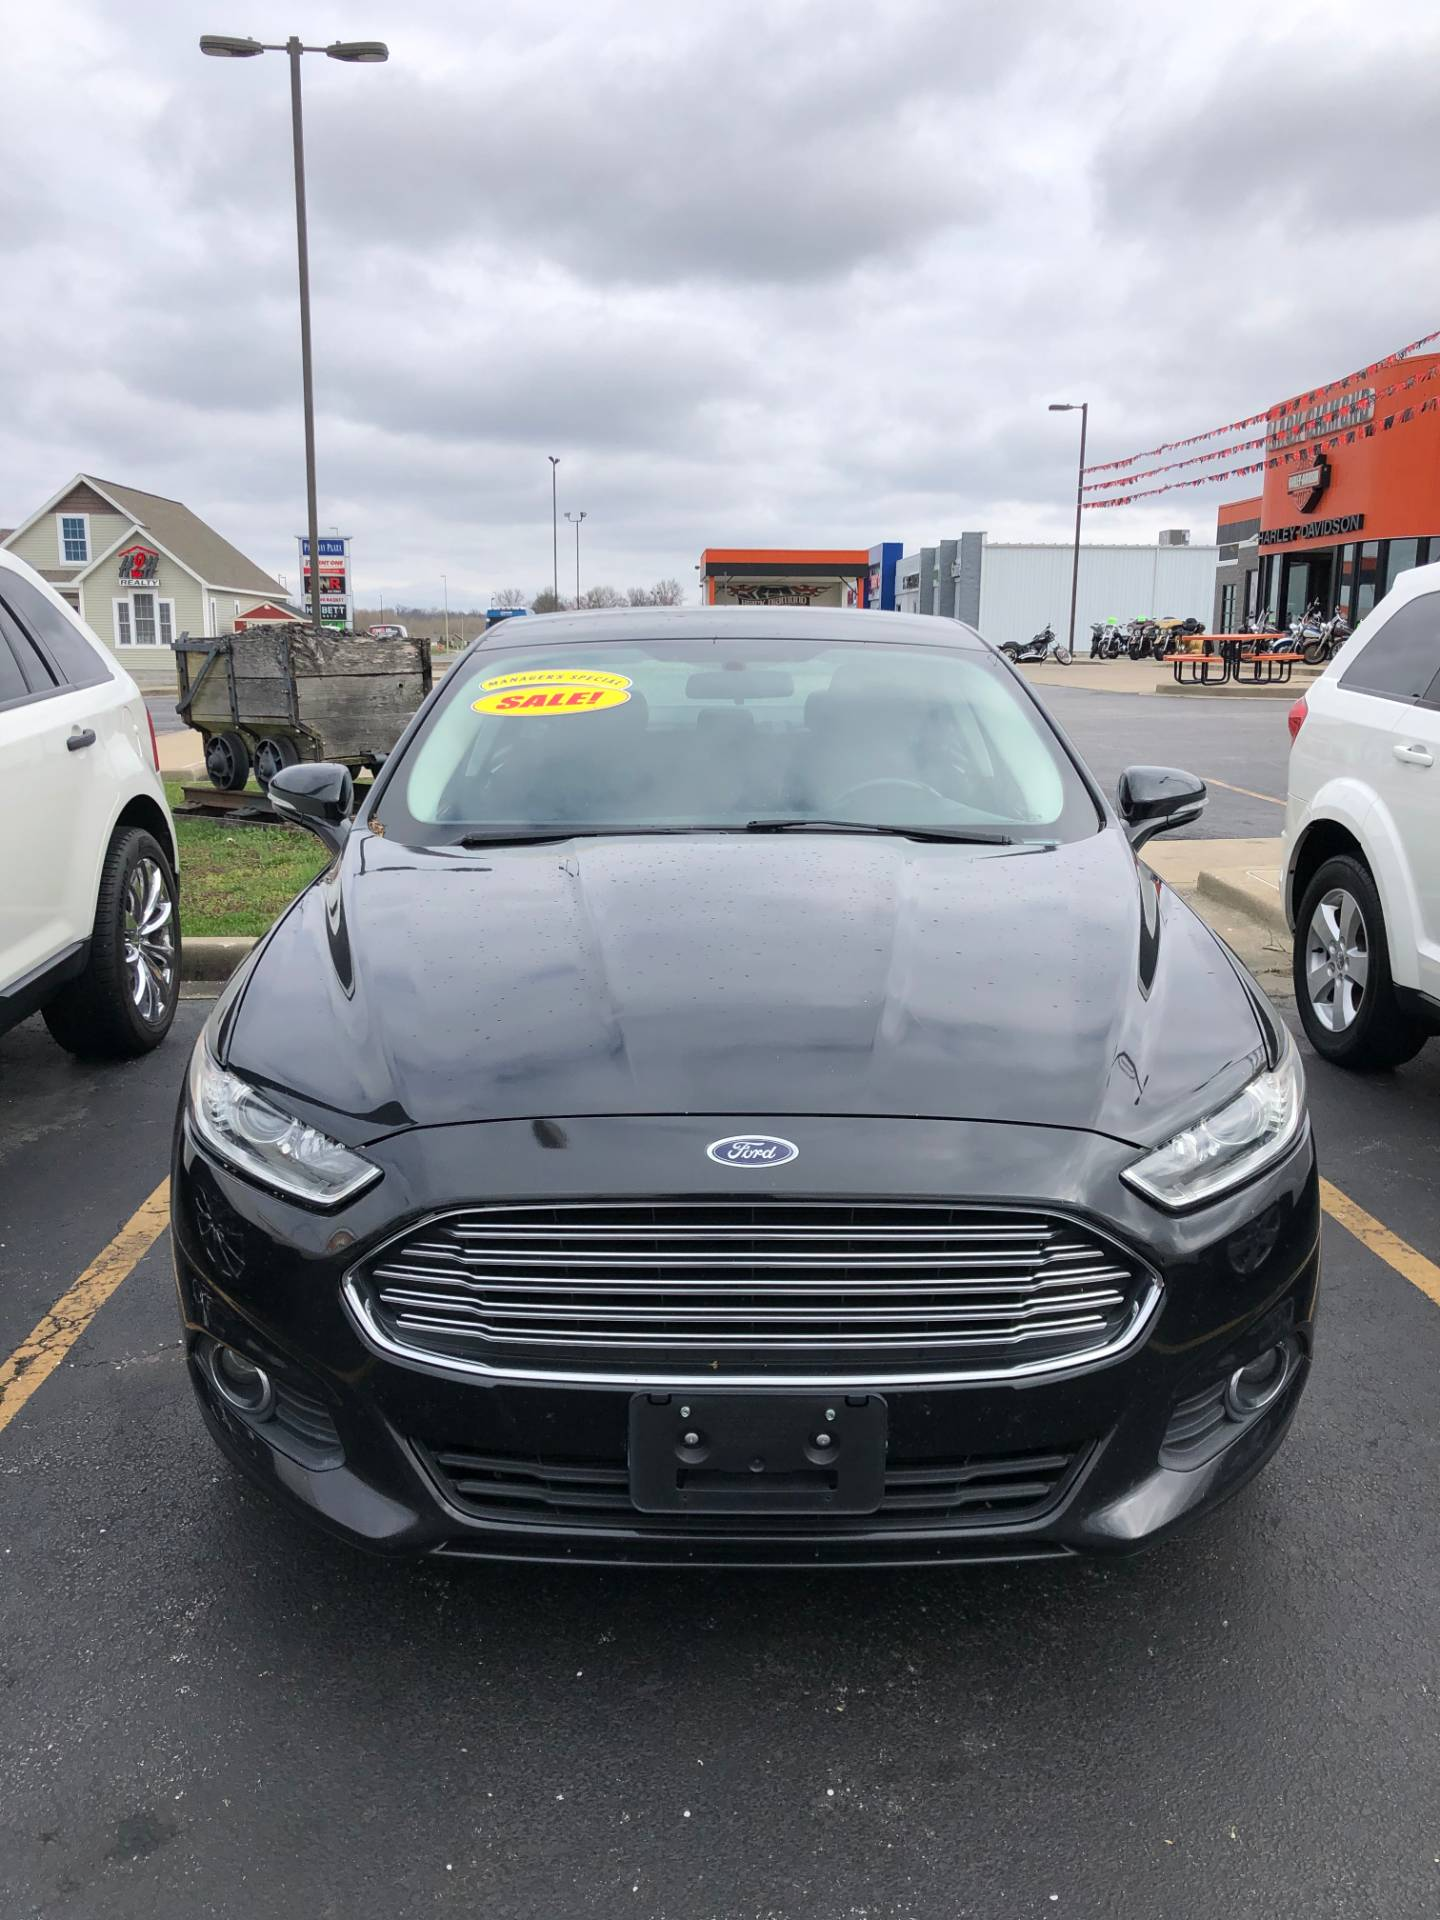 2014 Ford Fusion in Marion, Illinois - Photo 2